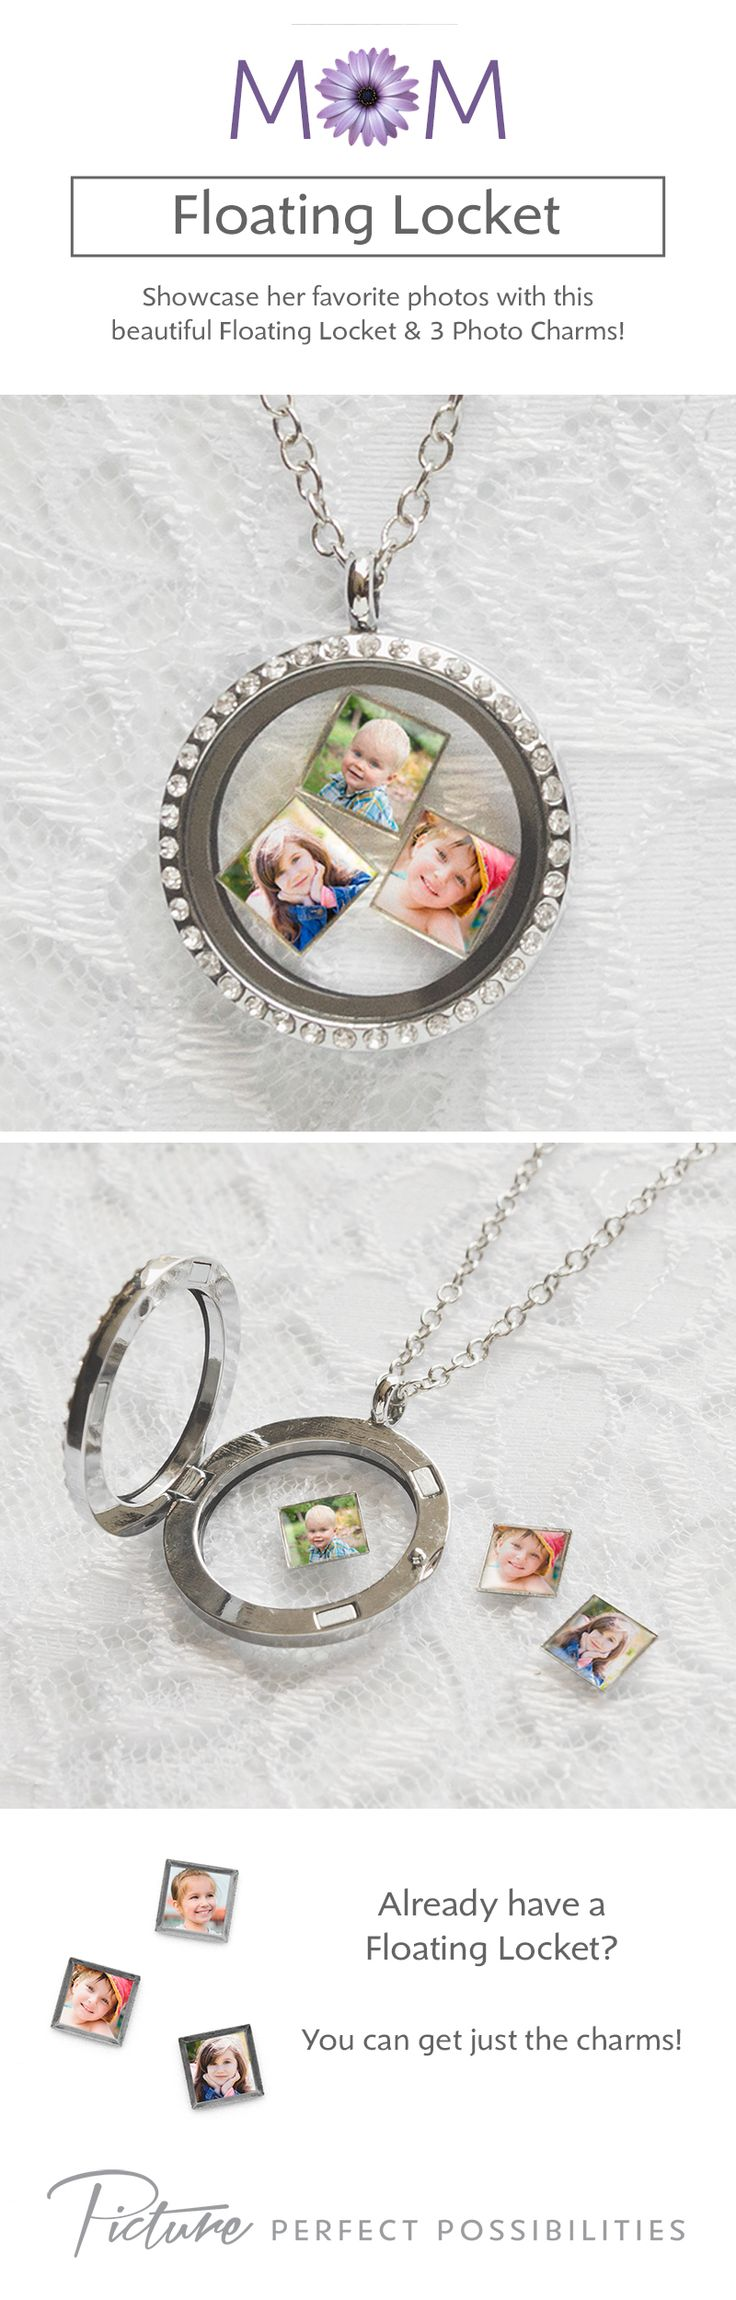 Customize a Floating Locket with her favorite photos. It comes with 3 tiny photo charms!